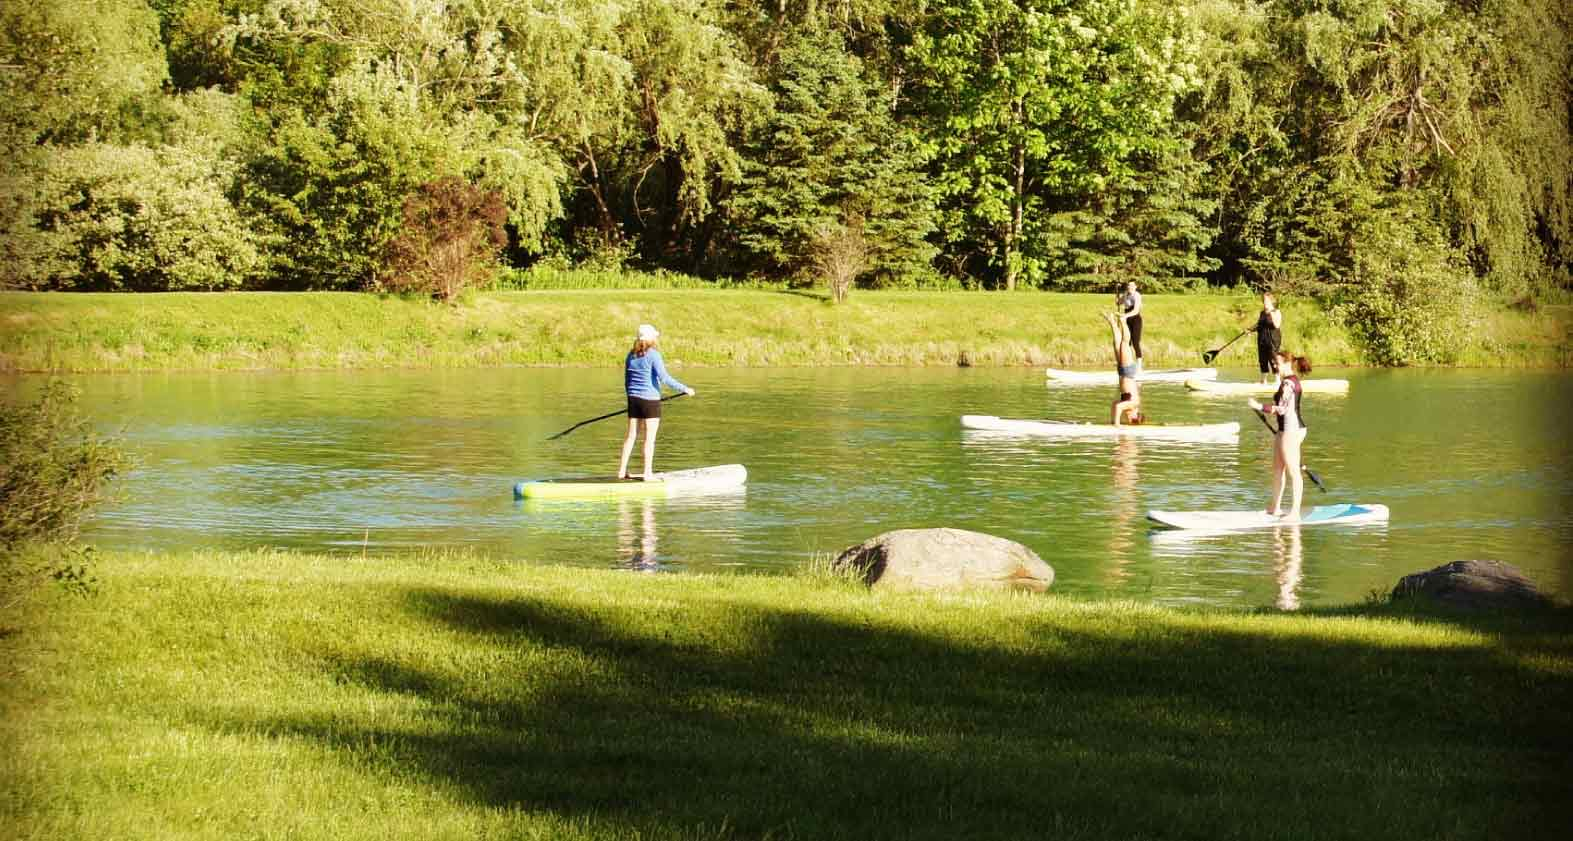 NirvanaRetreats-Pond-Paddleboard